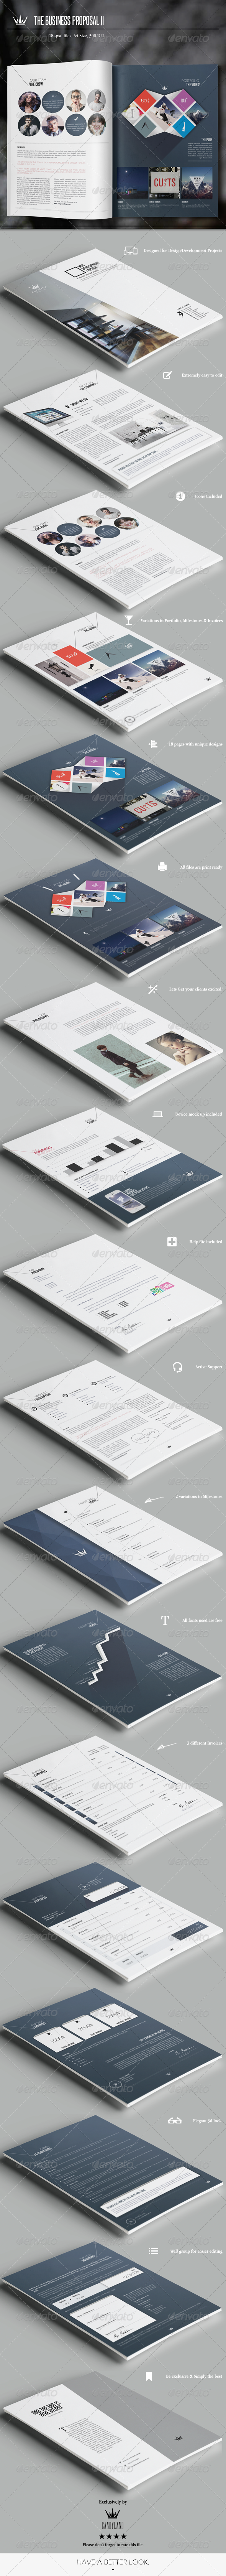 GraphicRiver The Business Proposal II 8583016